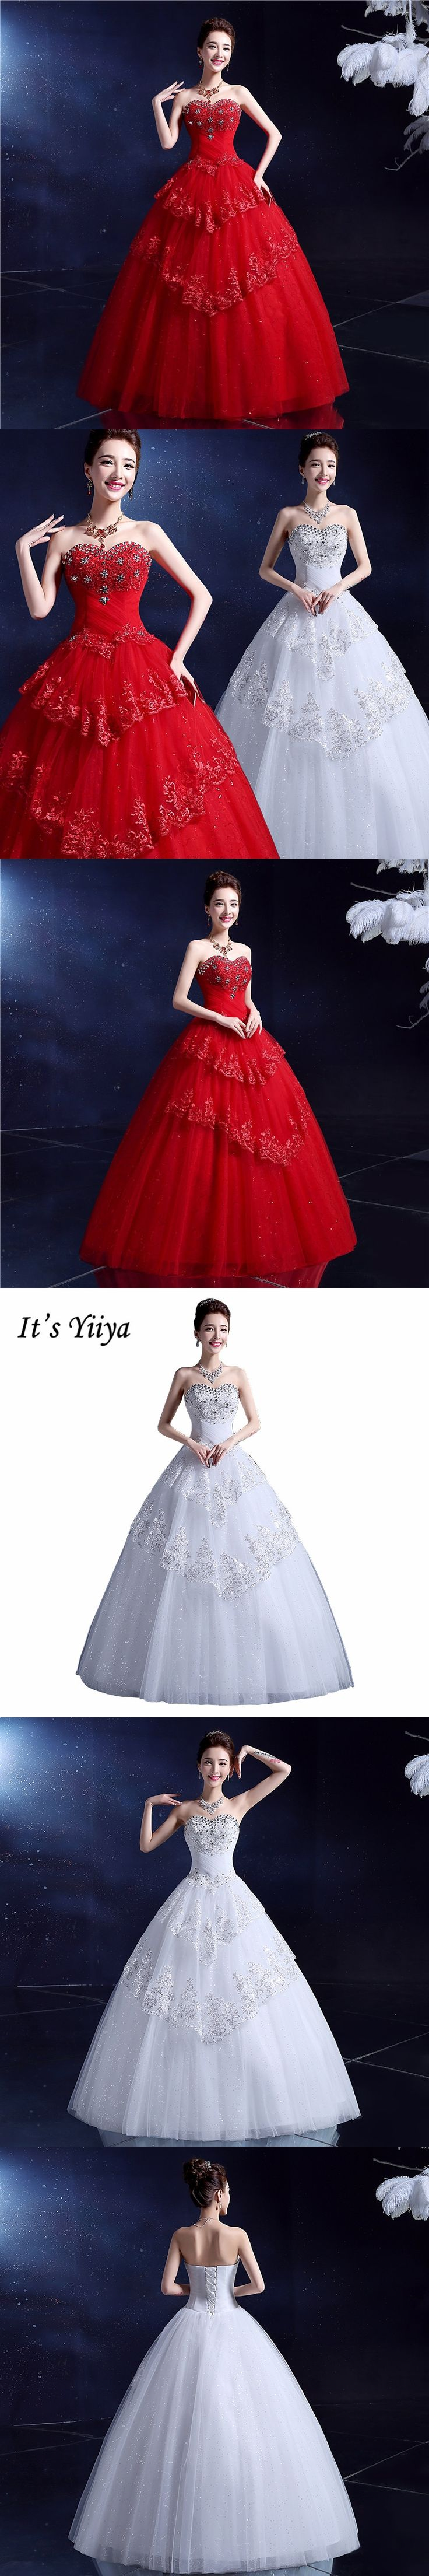 Free Shipping Plus Size Sequins Strapless Wedding Dresses White Red Princess Bride Gowns Real Photo Vestidos De Novia MY10